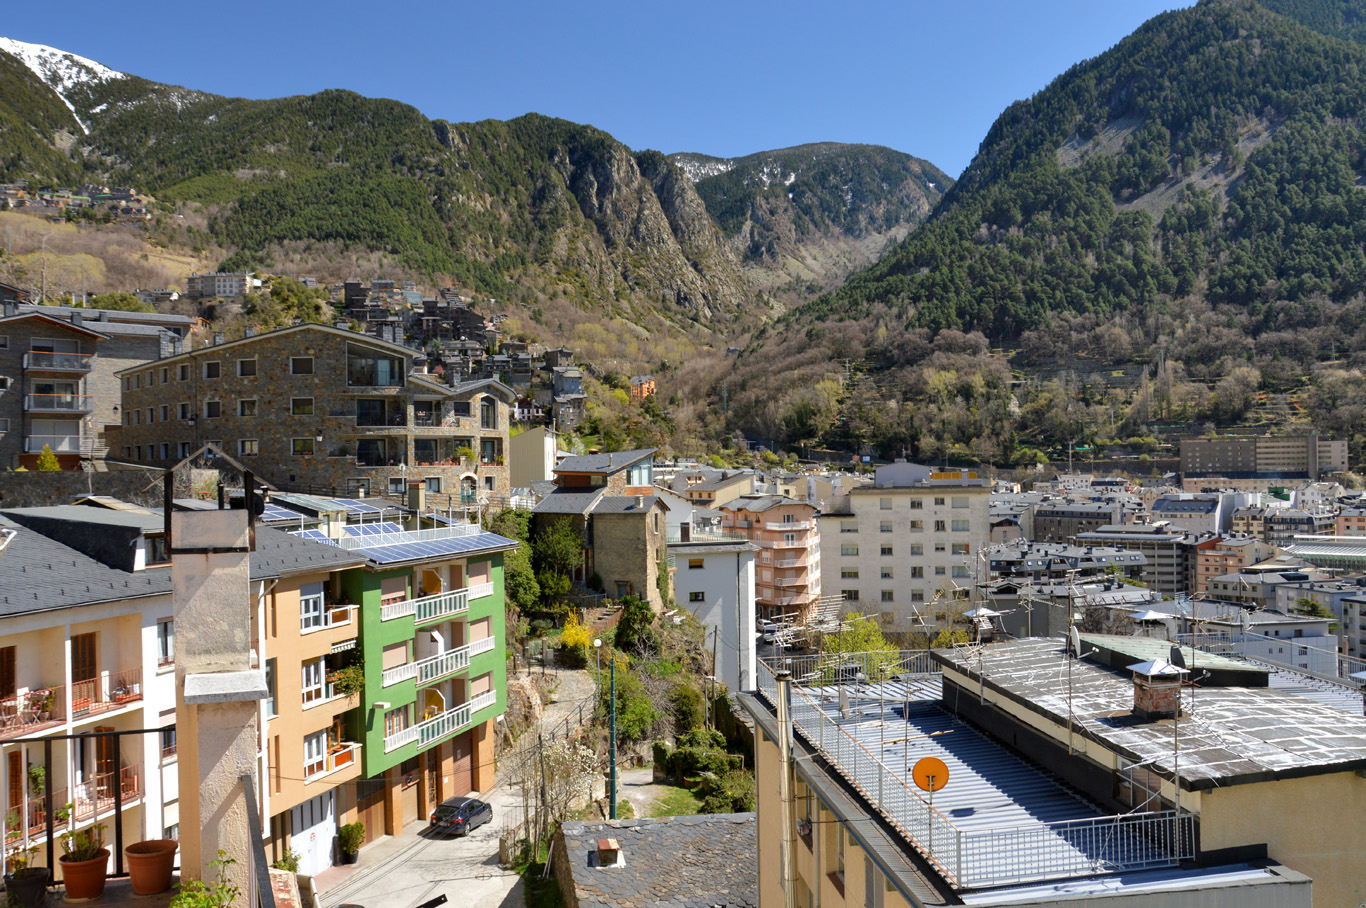 Andorra - one of the villages